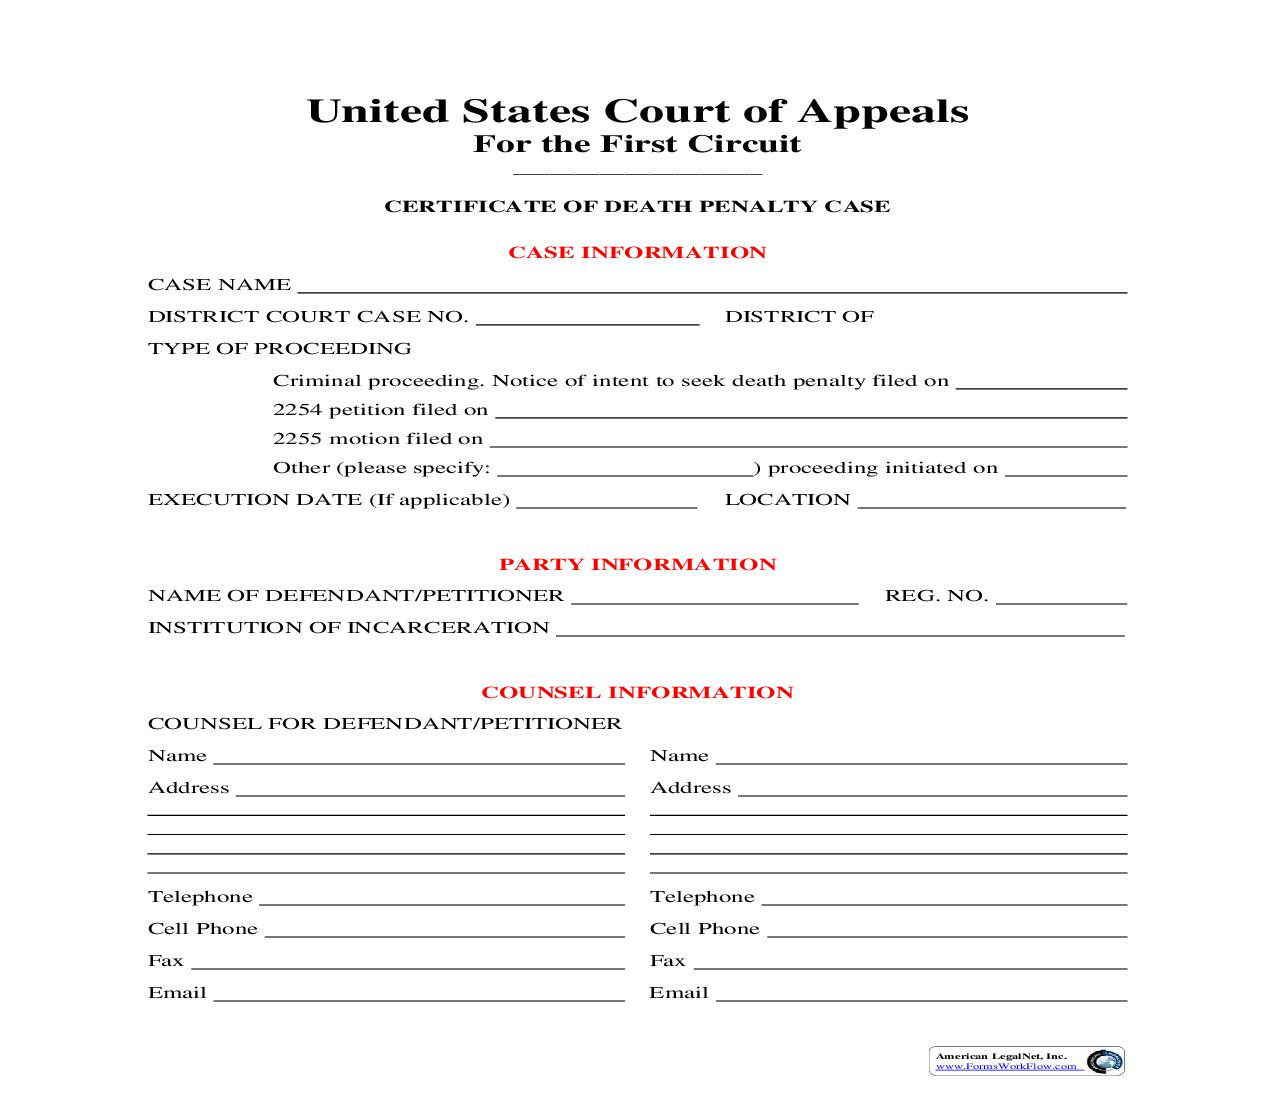 Certificate Of Death Penalty Case | Pdf Fpdf Doc Docx | Official Federal Forms